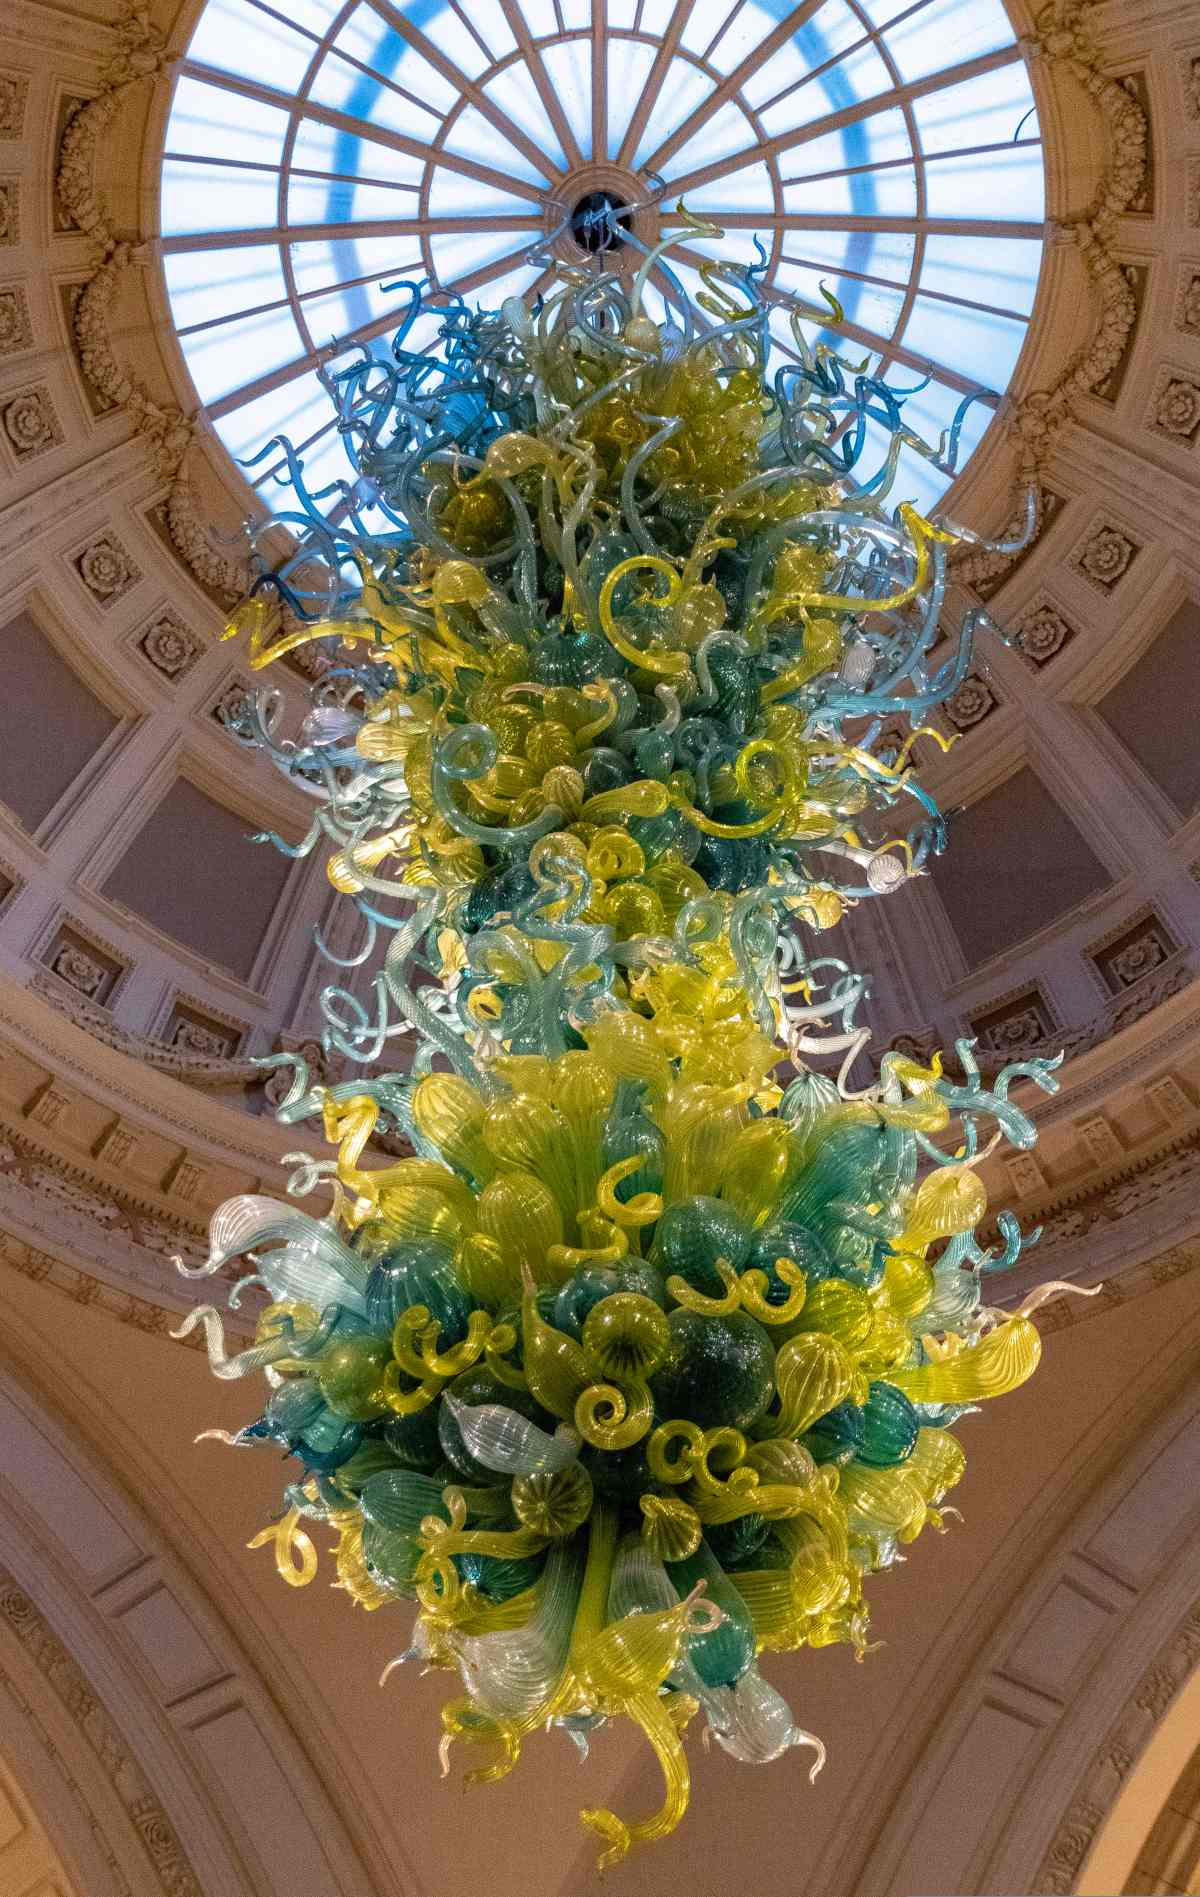 PhotoPOSTcard: Chihuly at the V&A